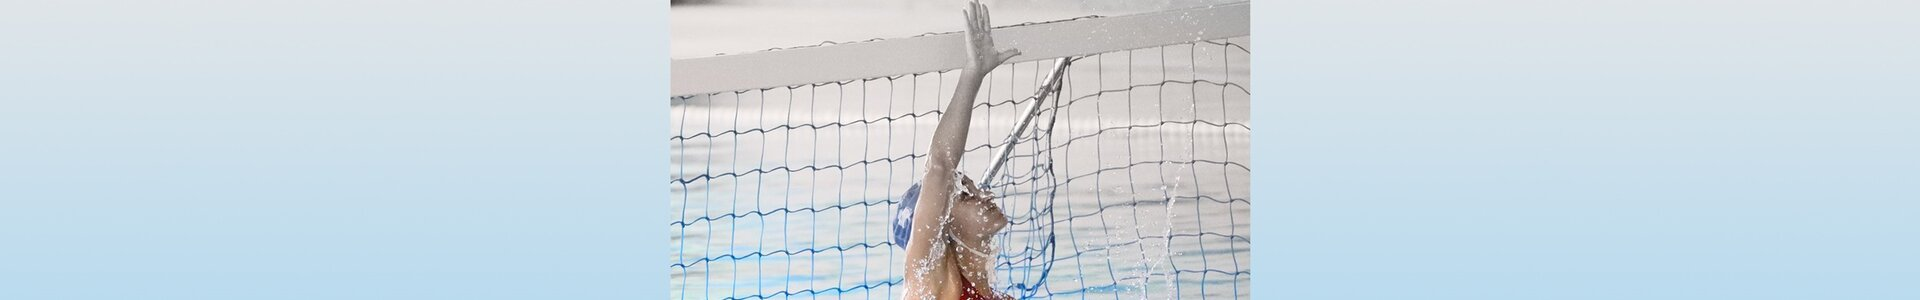 Imagem waterpolo 1 1920 300